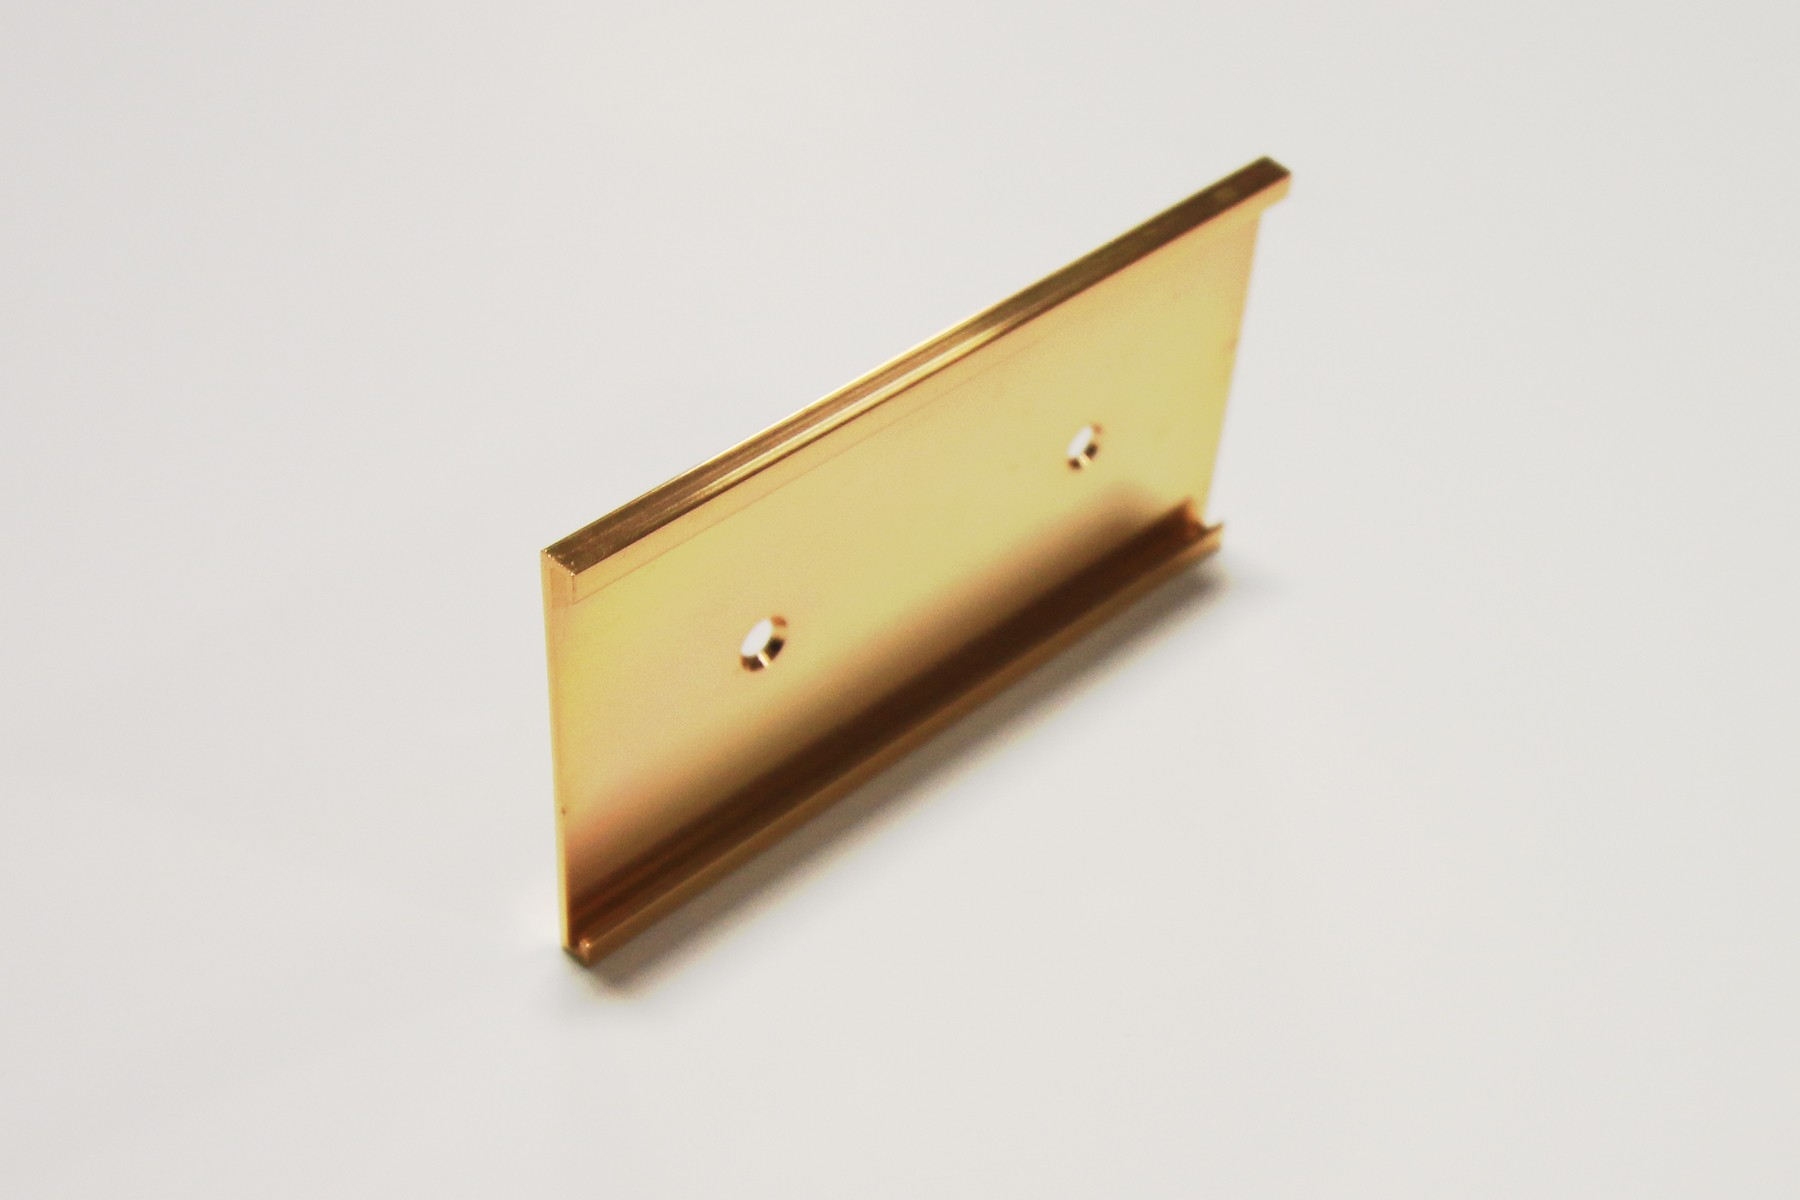 2 x 20 Wall Holder, Gold